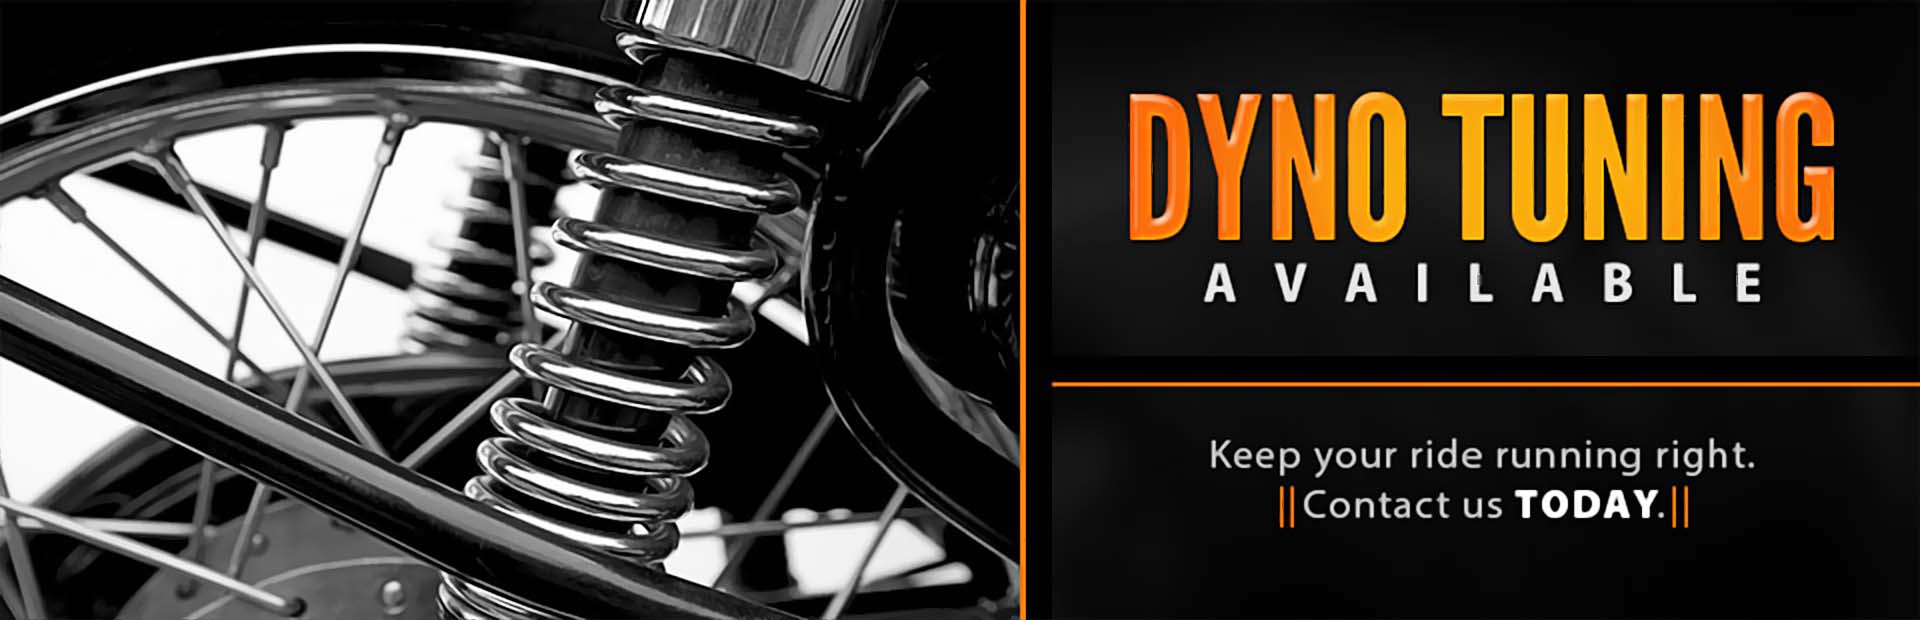 Dyno Tuning Available: Contact us today.